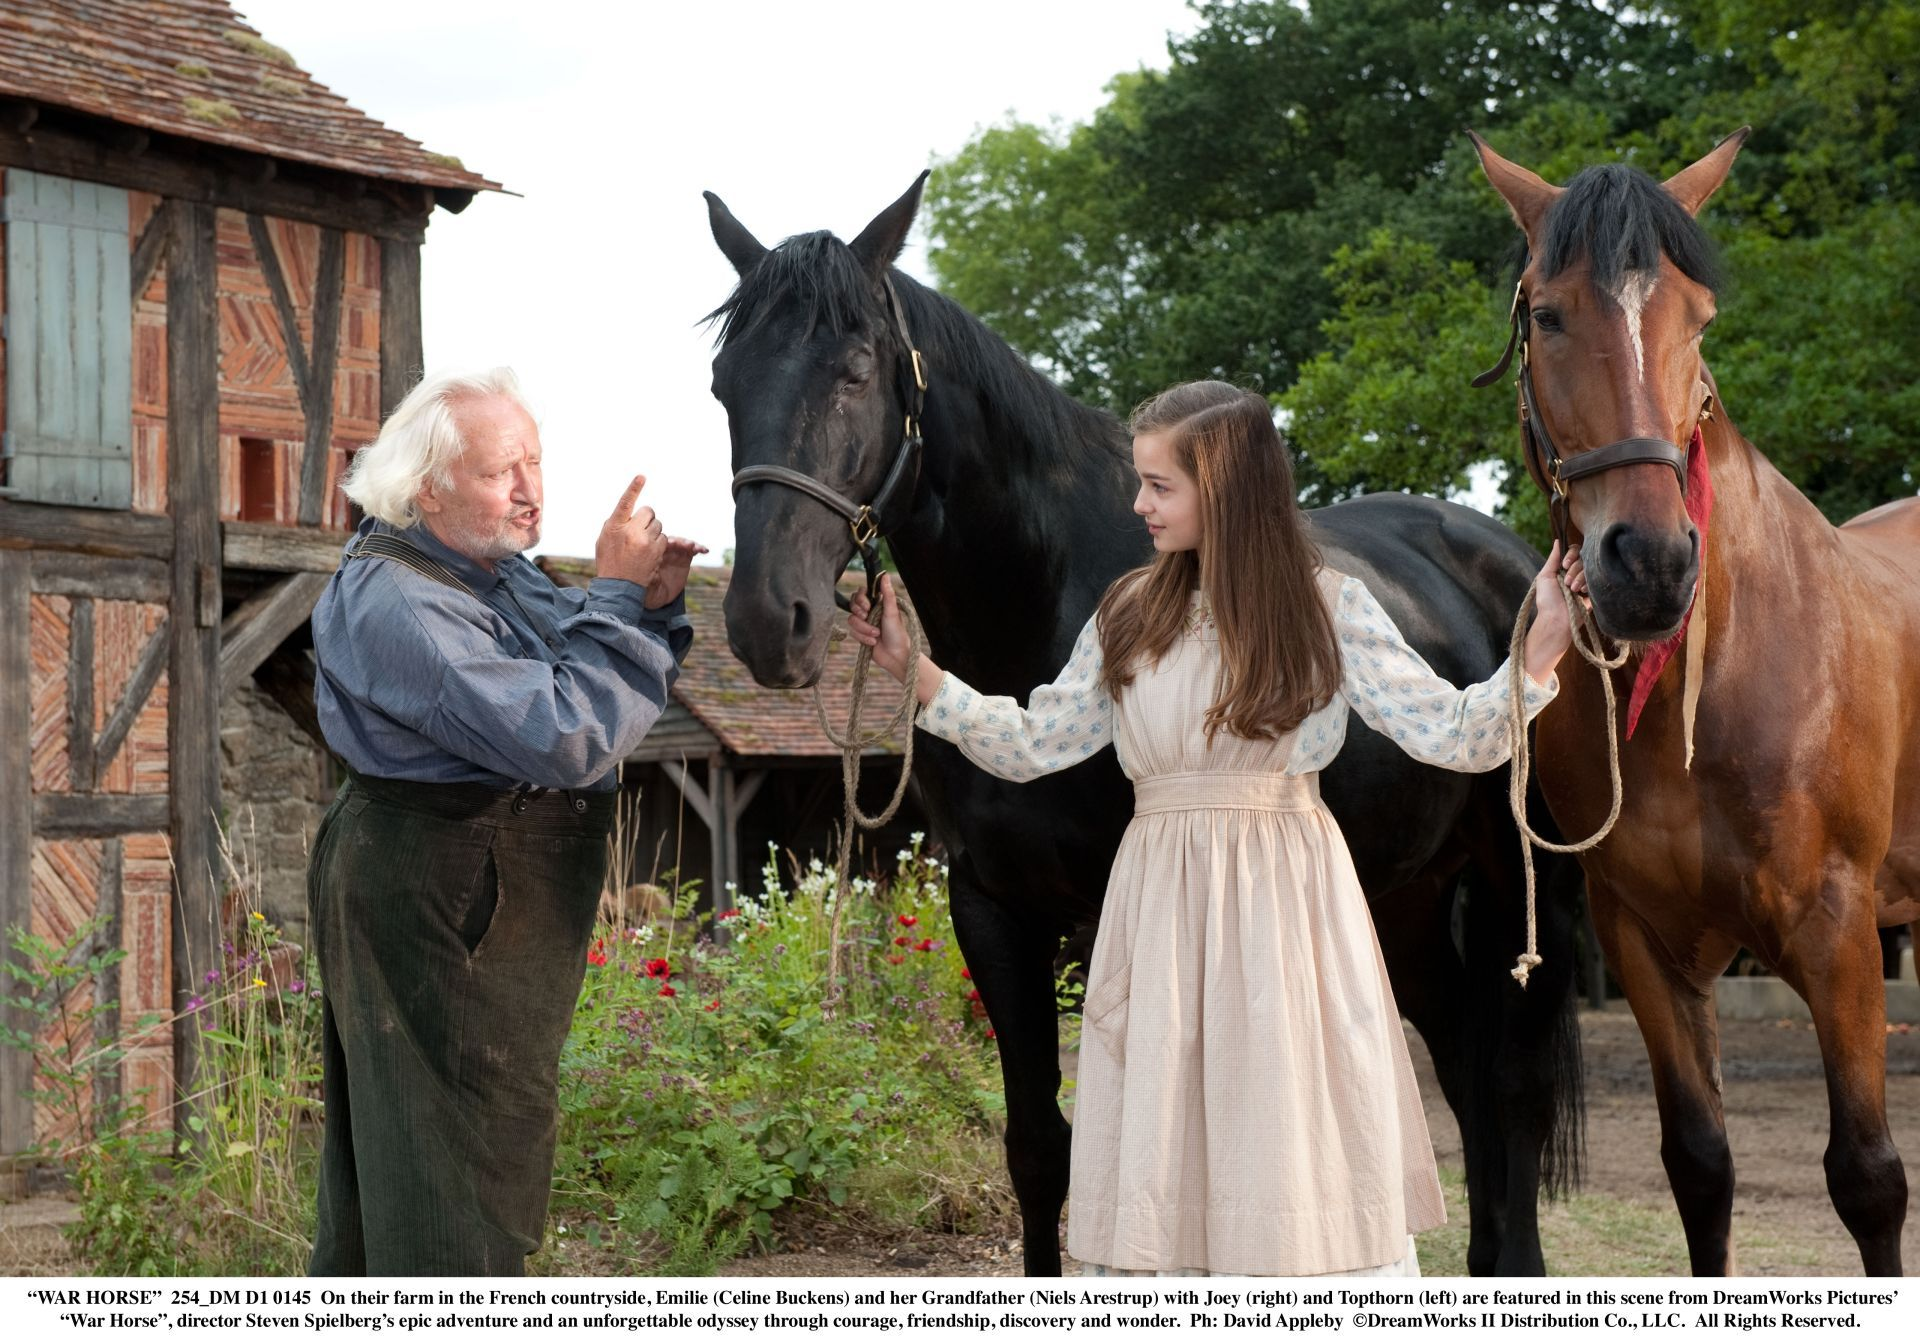 On their farm in the French countryside, Emilie (Celine Buckens) and her Grandfather (Niels Arestrup) with Joey (right) and Topthorn (left) - DreamWorks Pictures' 'War Horse' Photo: David Appleby. ©DreamWorks II Distribution Co., LLC. All Rights Reserved.